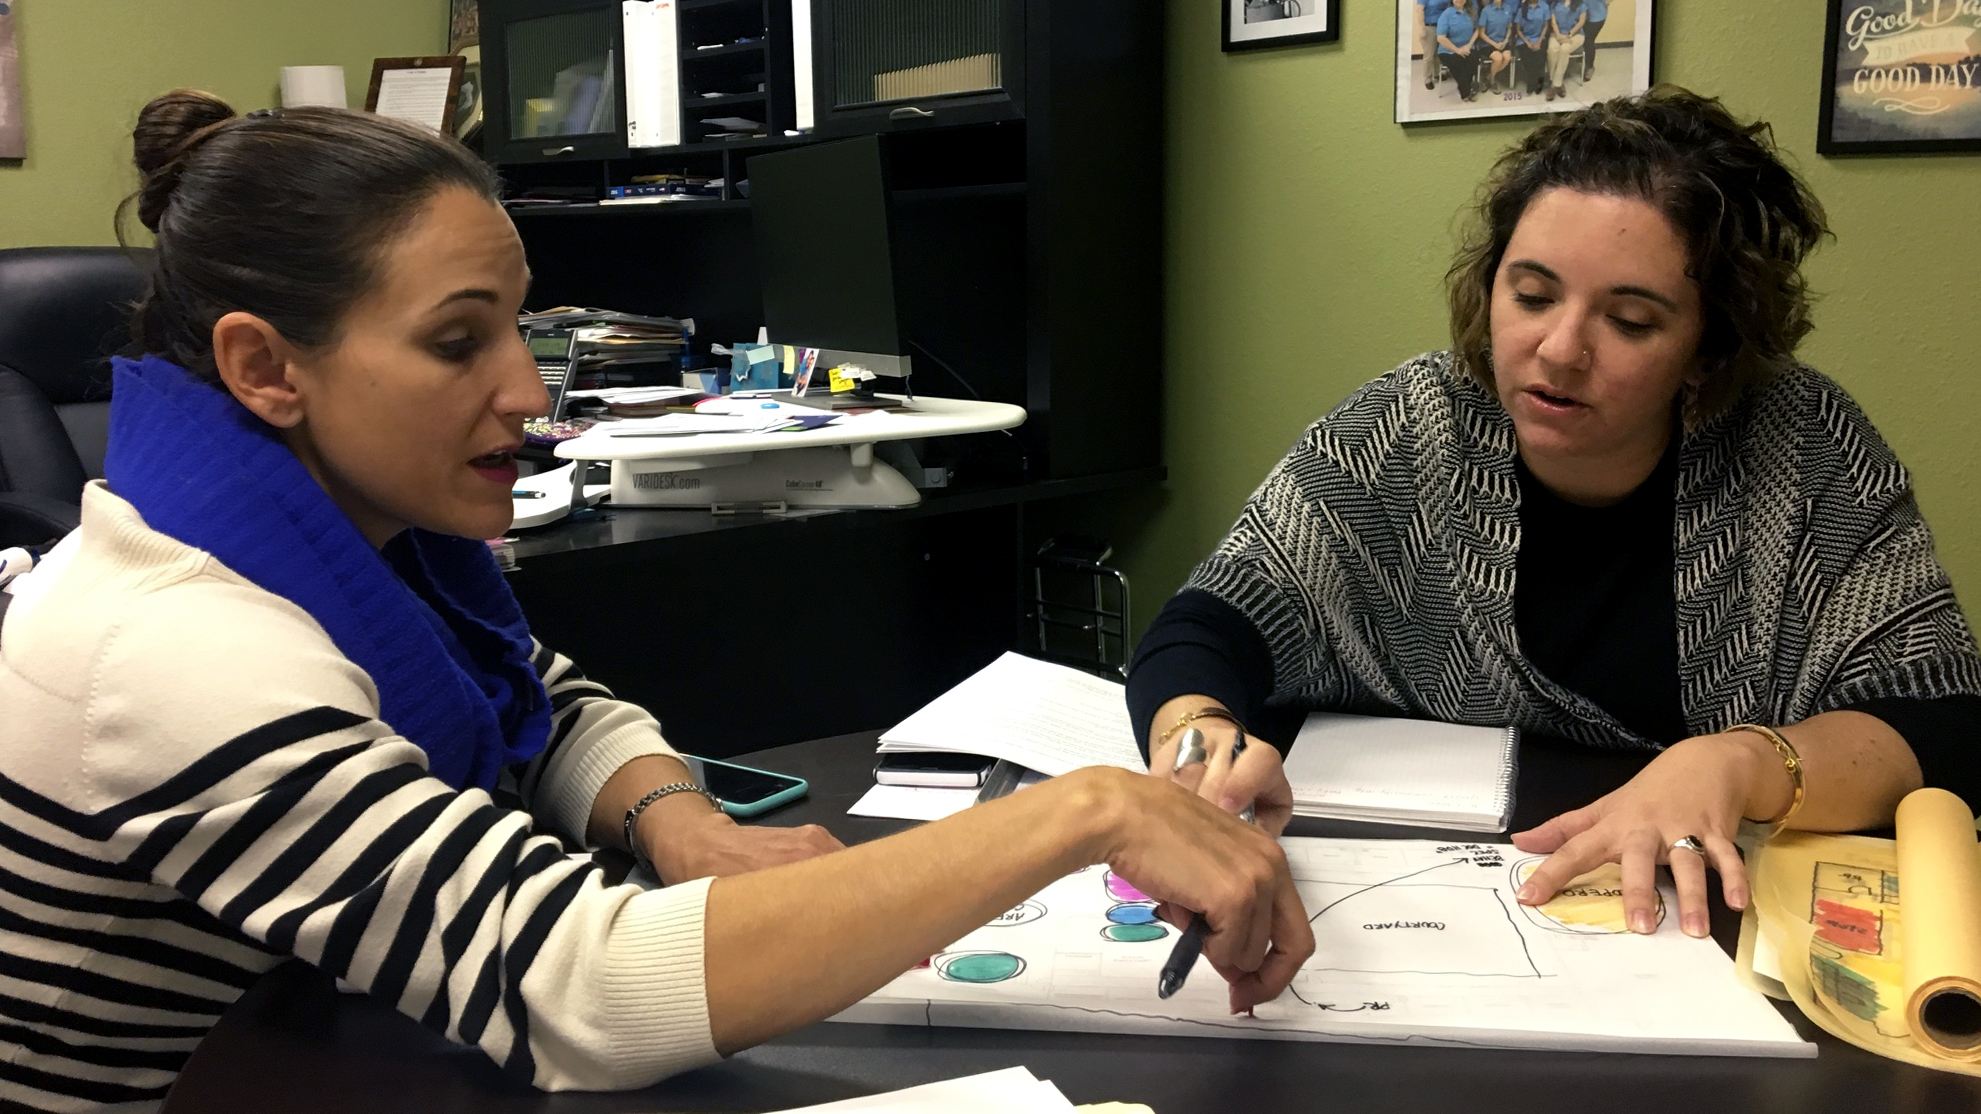 Rebecca of the Hope Family Health Center and Carolina of ORANGE-MADE discuss schematic design ideas for HFHC's new facilities. The project is currently in the implementation phase and expected to be completed in the spring of 2017.